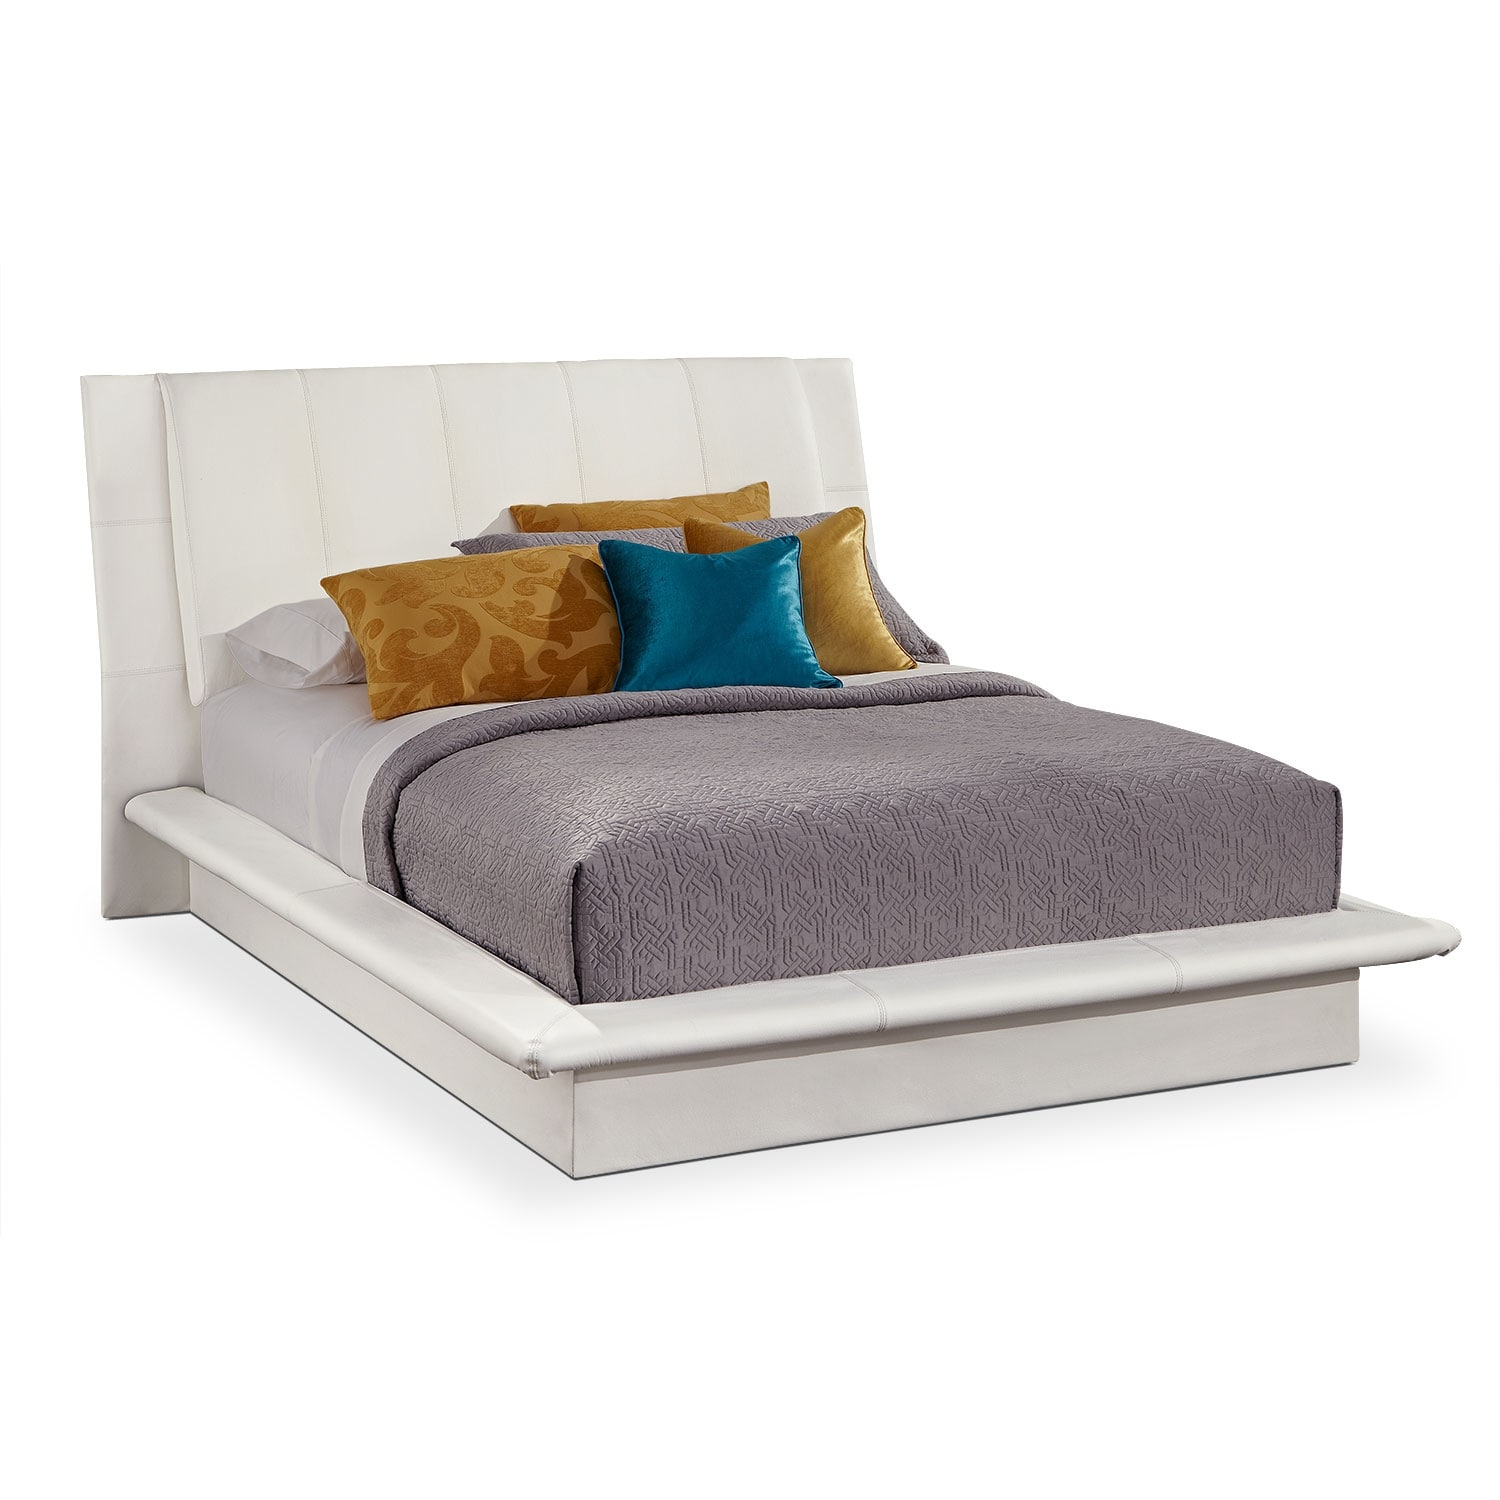 Dimora white queen bed value city furniture - Furniture bed image ...